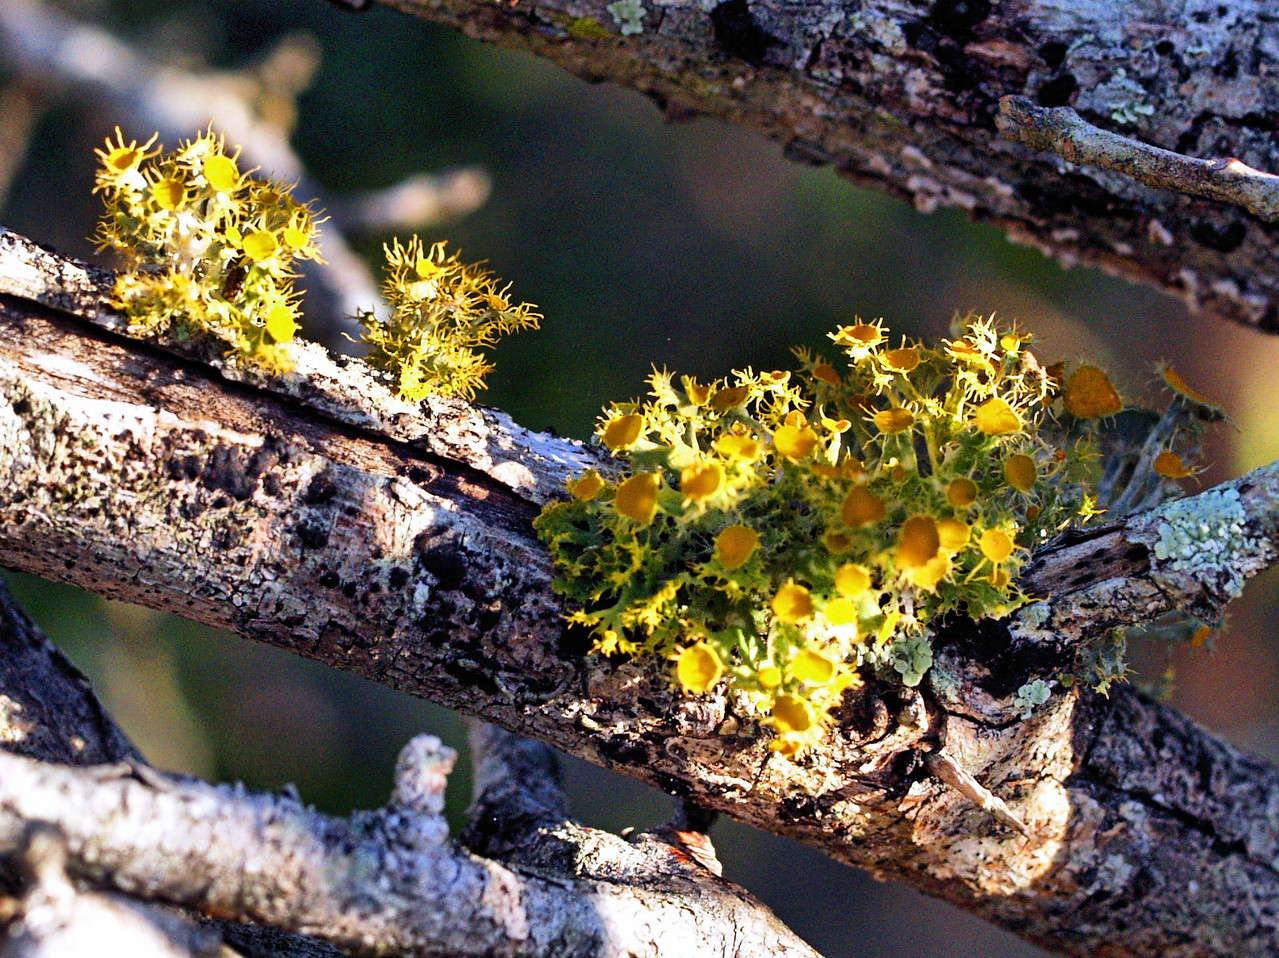 OLYMPUS DIGITAL CAMERA--Colorful lichens on a mesquite branch.